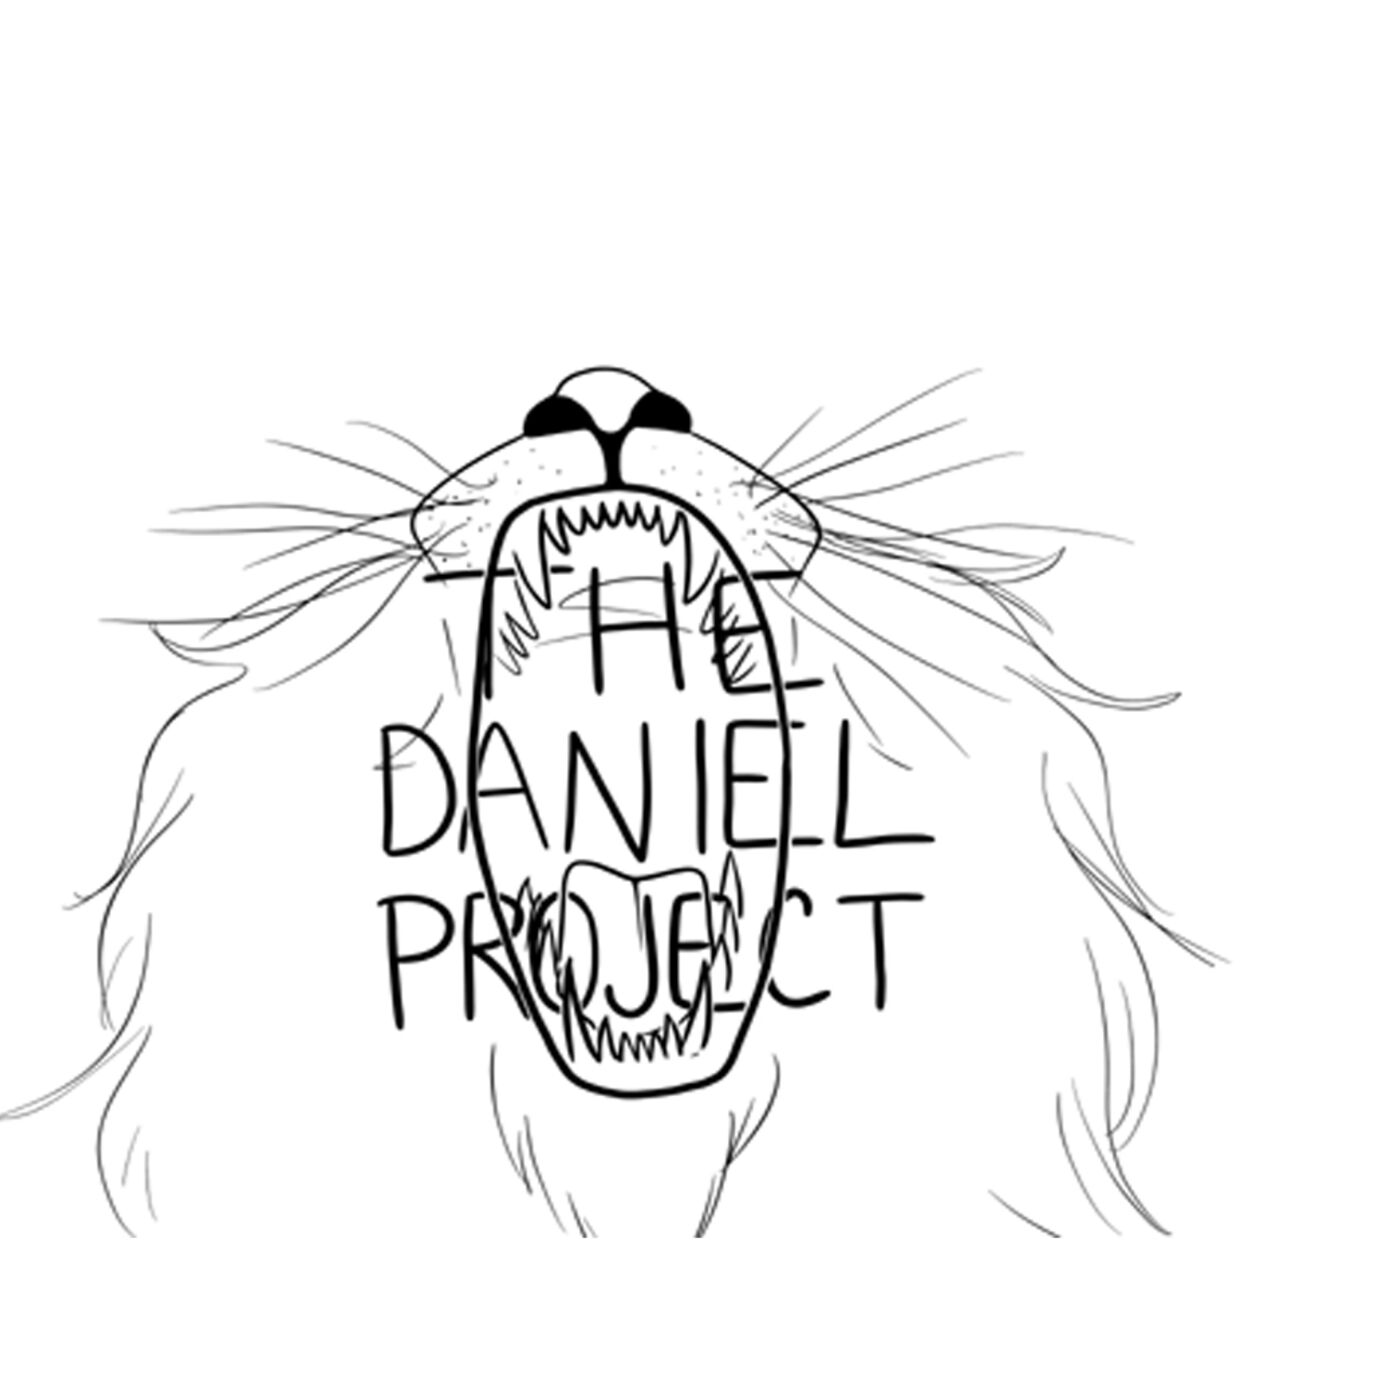 The Daniel Project: Part Three (Carena Bloom and Mark Crawford)